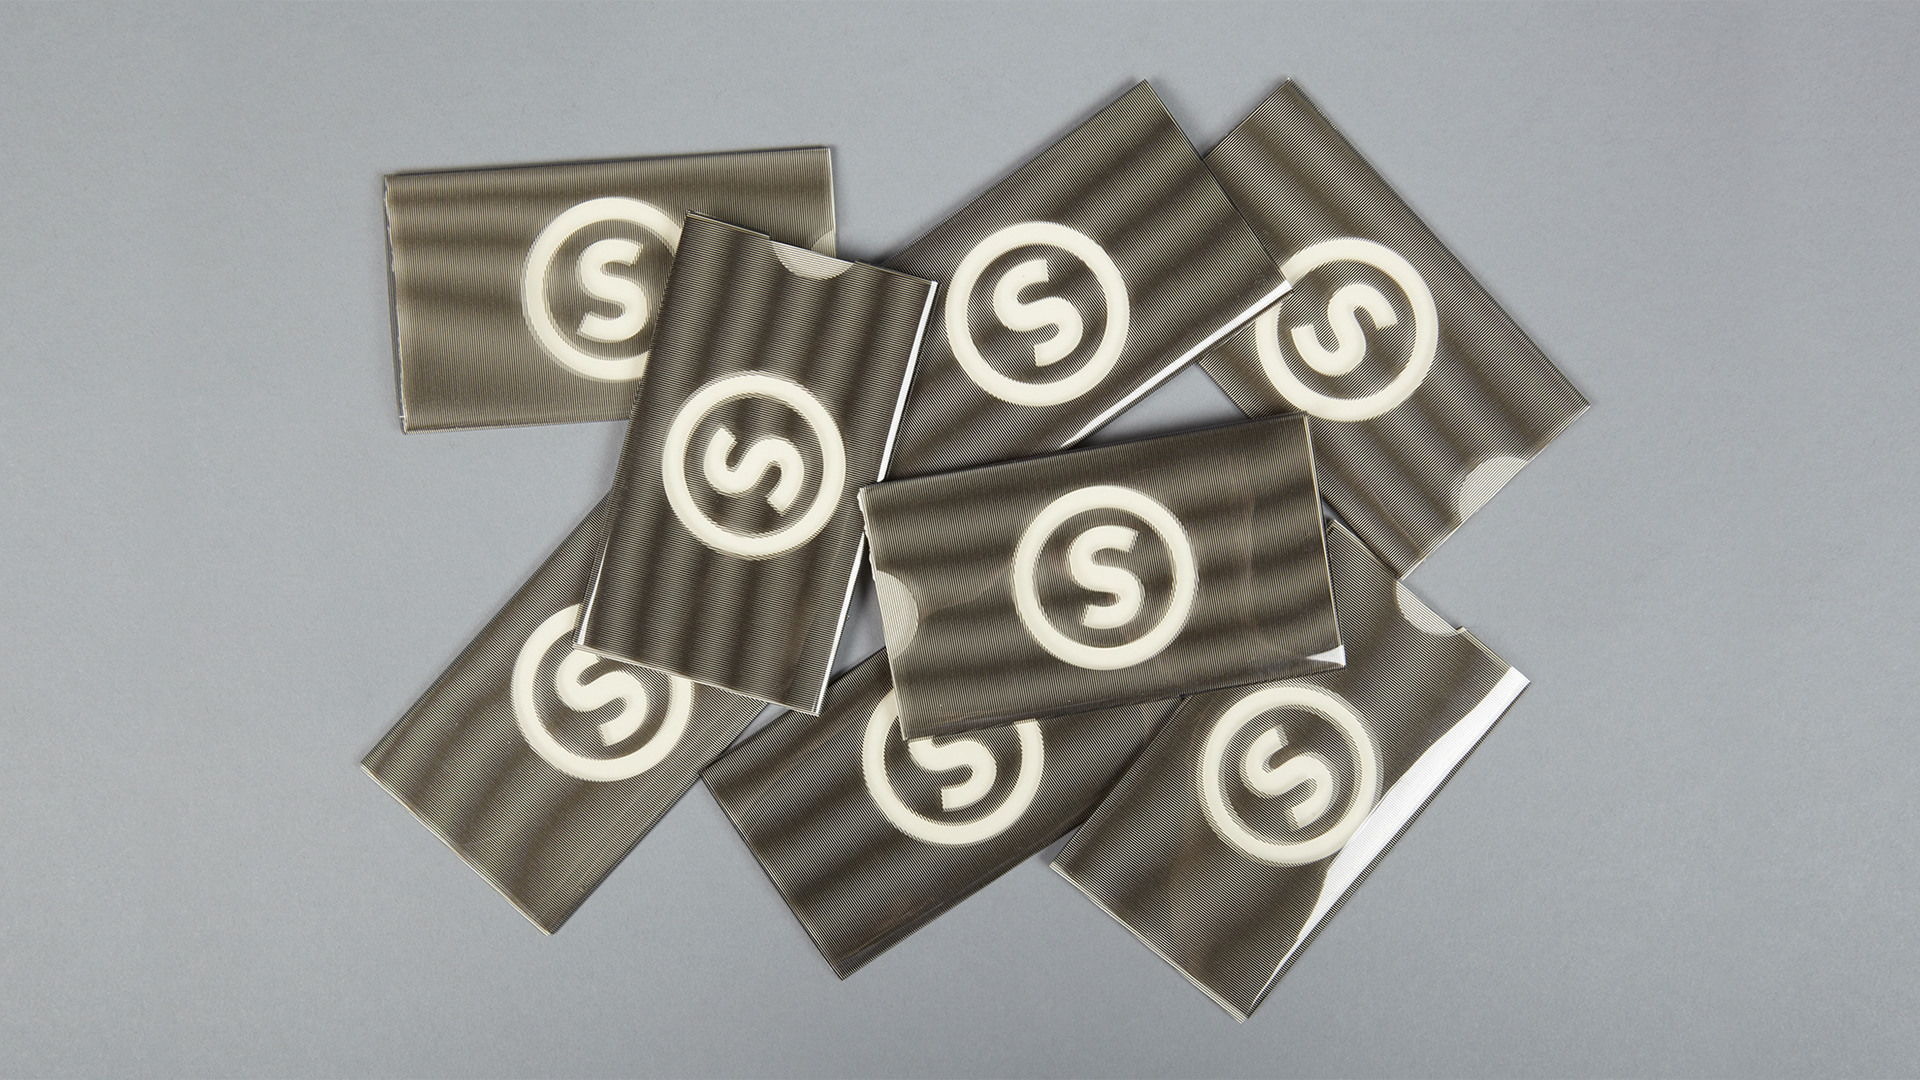 Sagmeister Inc. Business Card One – Sagmeister & Walsh